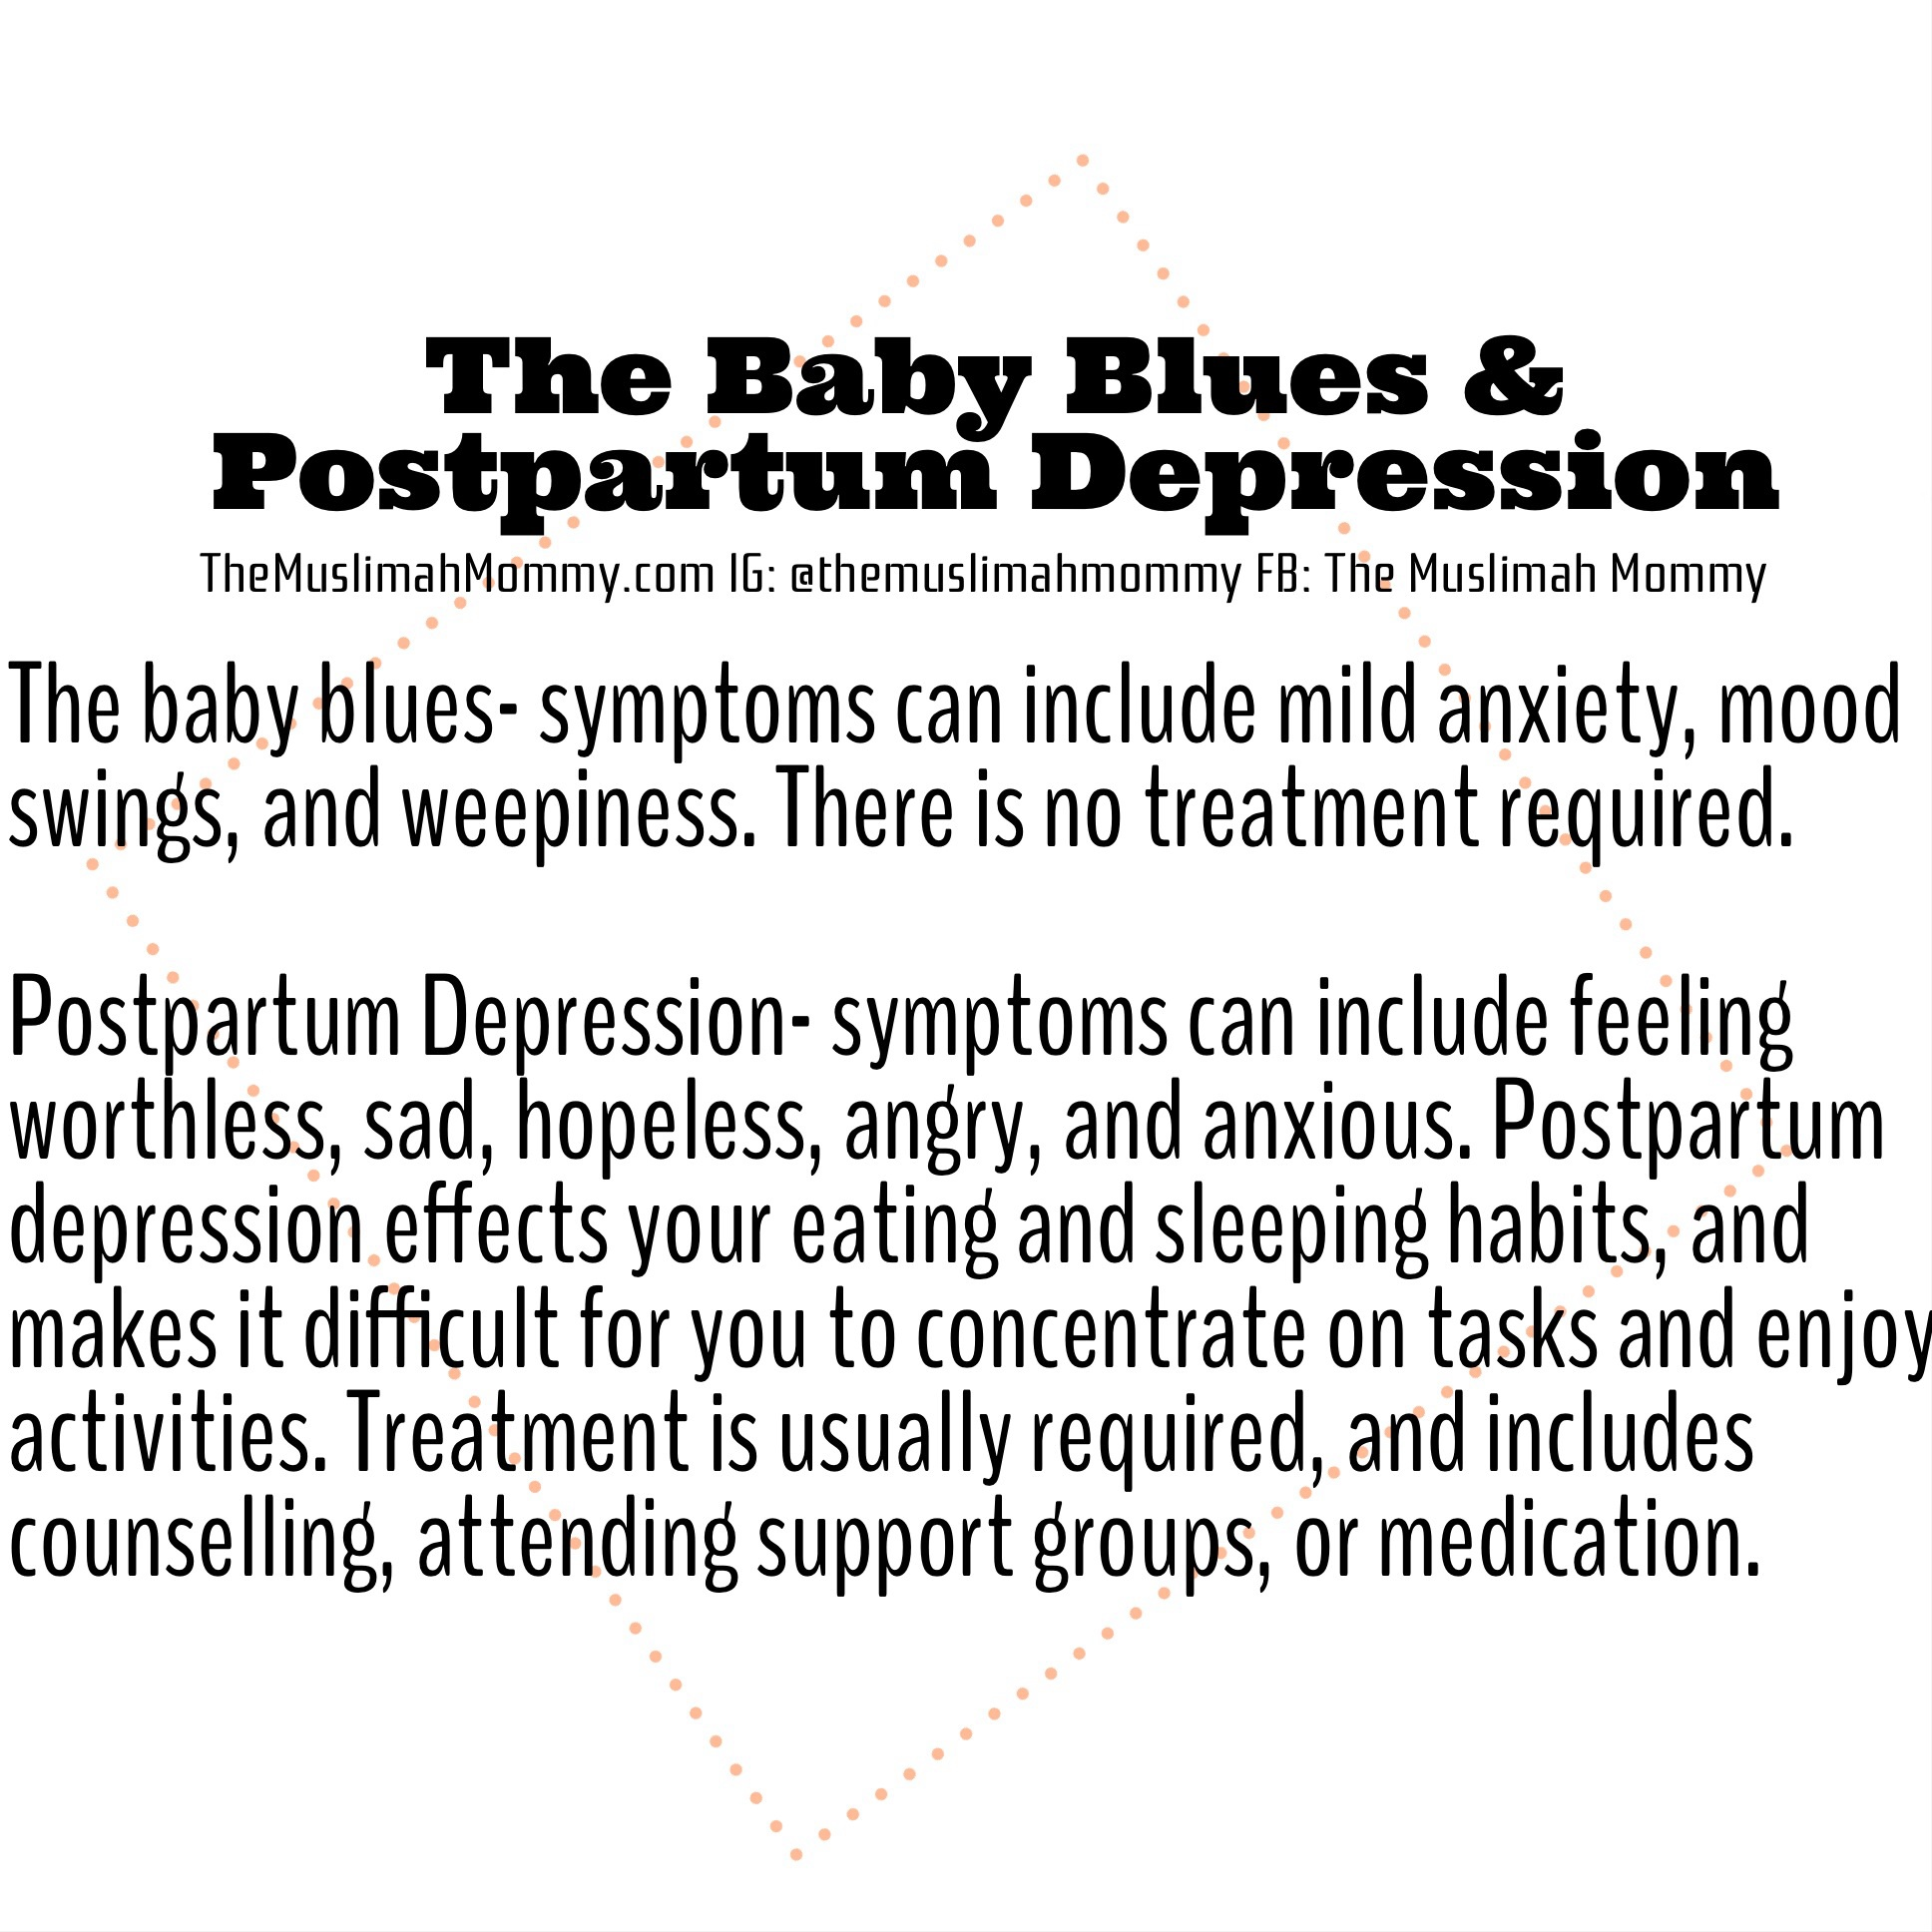 the baby blues postpartum depression the muslimah mommy